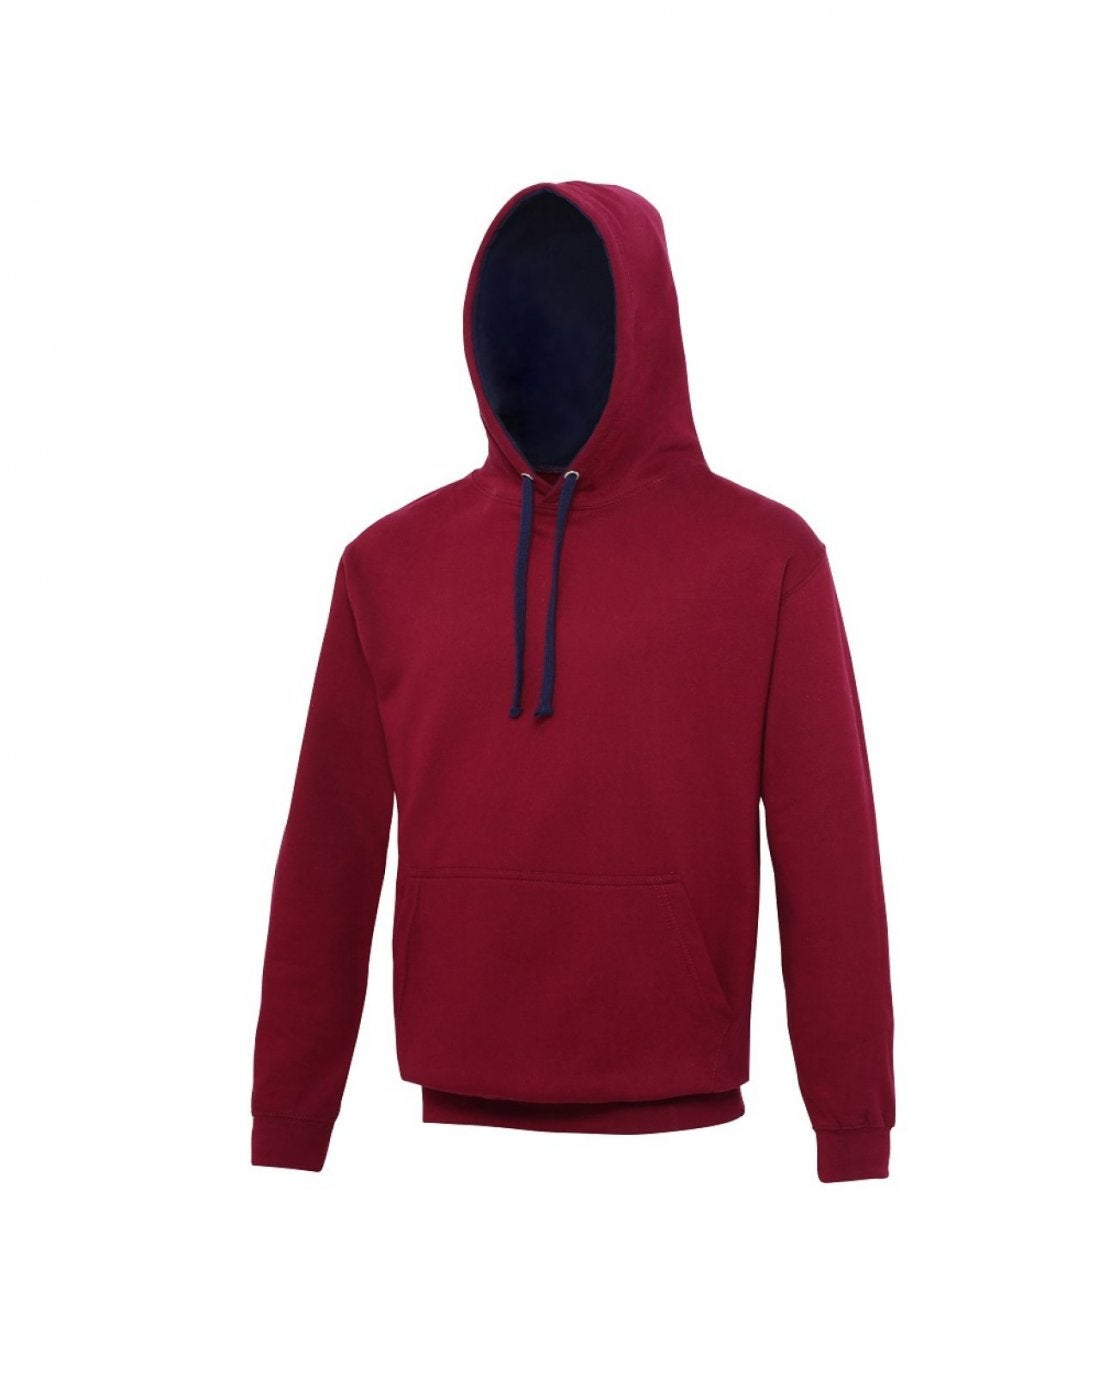 Image of Shifty Burgundy/Navy Hoodie